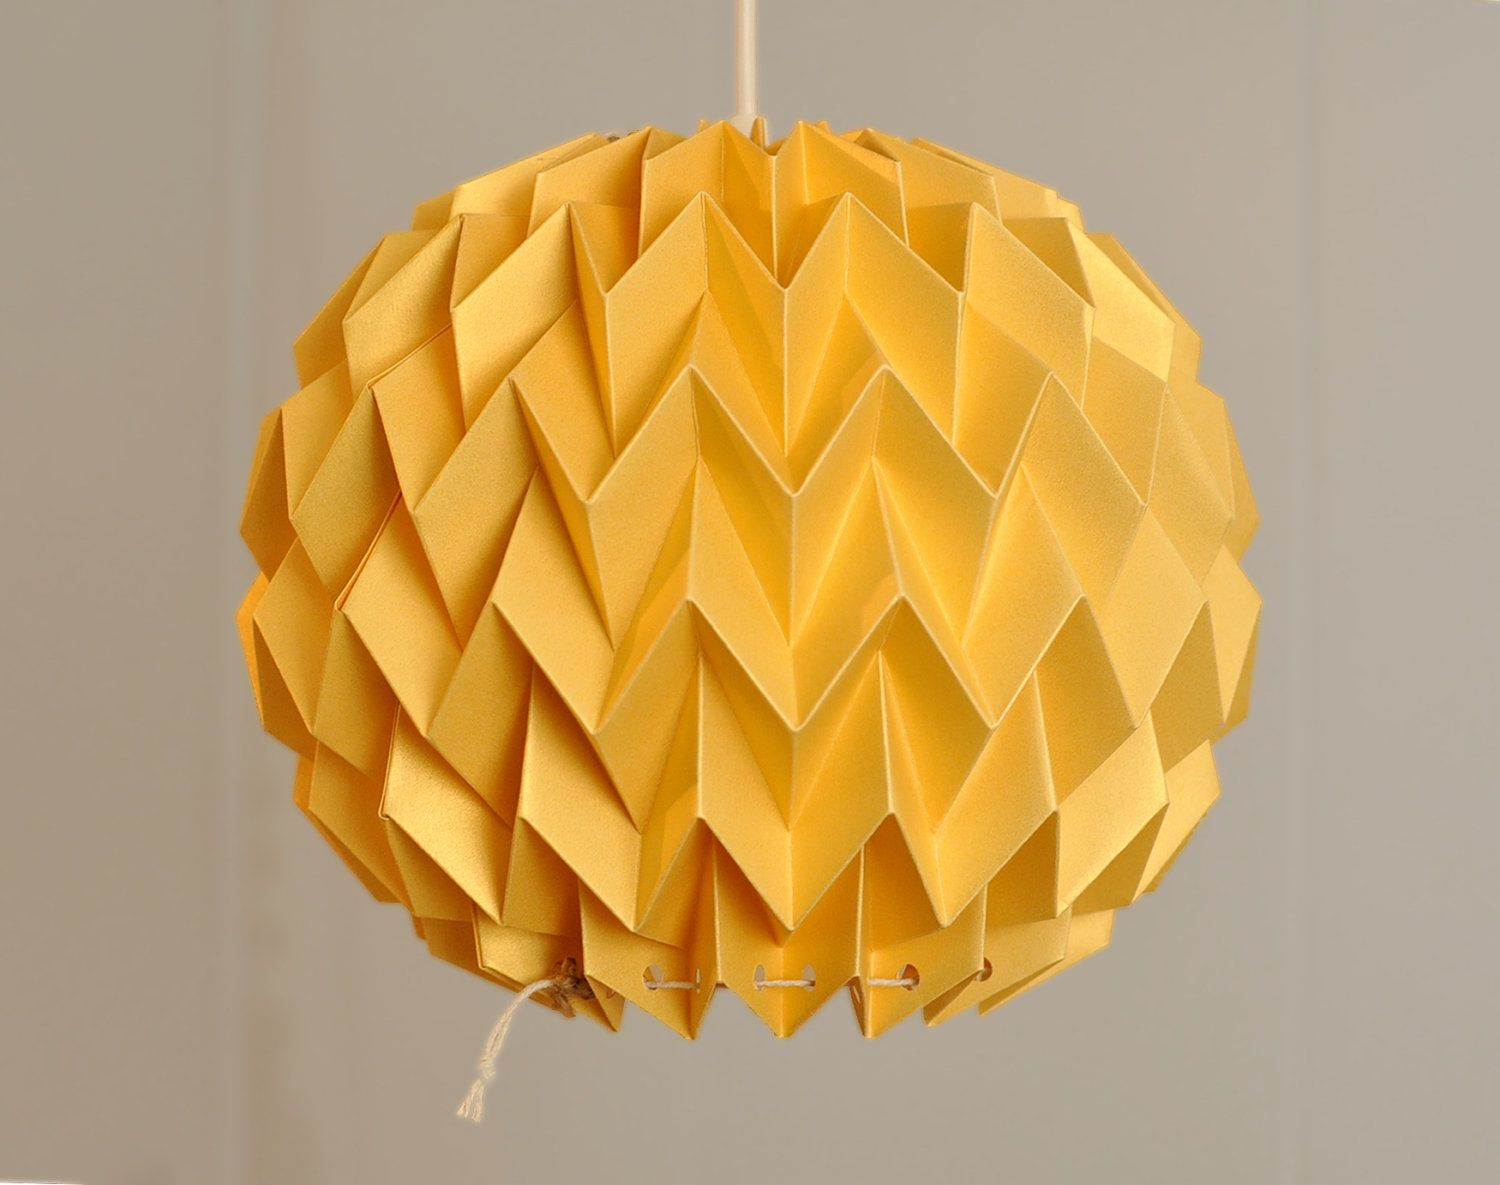 Bubble origami paper lamp shade lantern gold yellow 4000 bubble origami paper lamp shade lantern gold yellow 4000 via etsy aloadofball Images